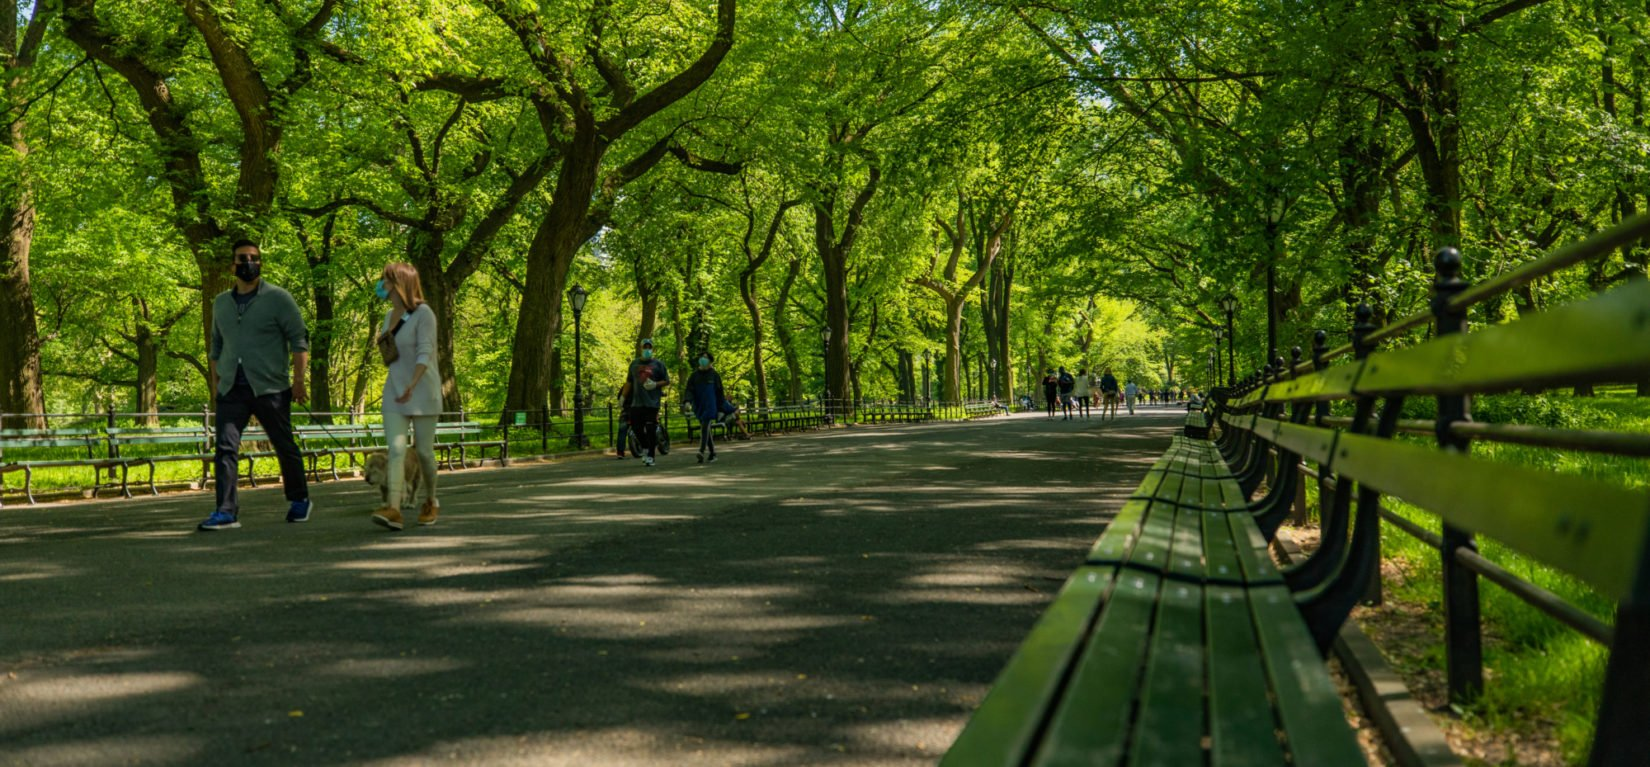 A view looking down the Mall under a canopy of elm trees